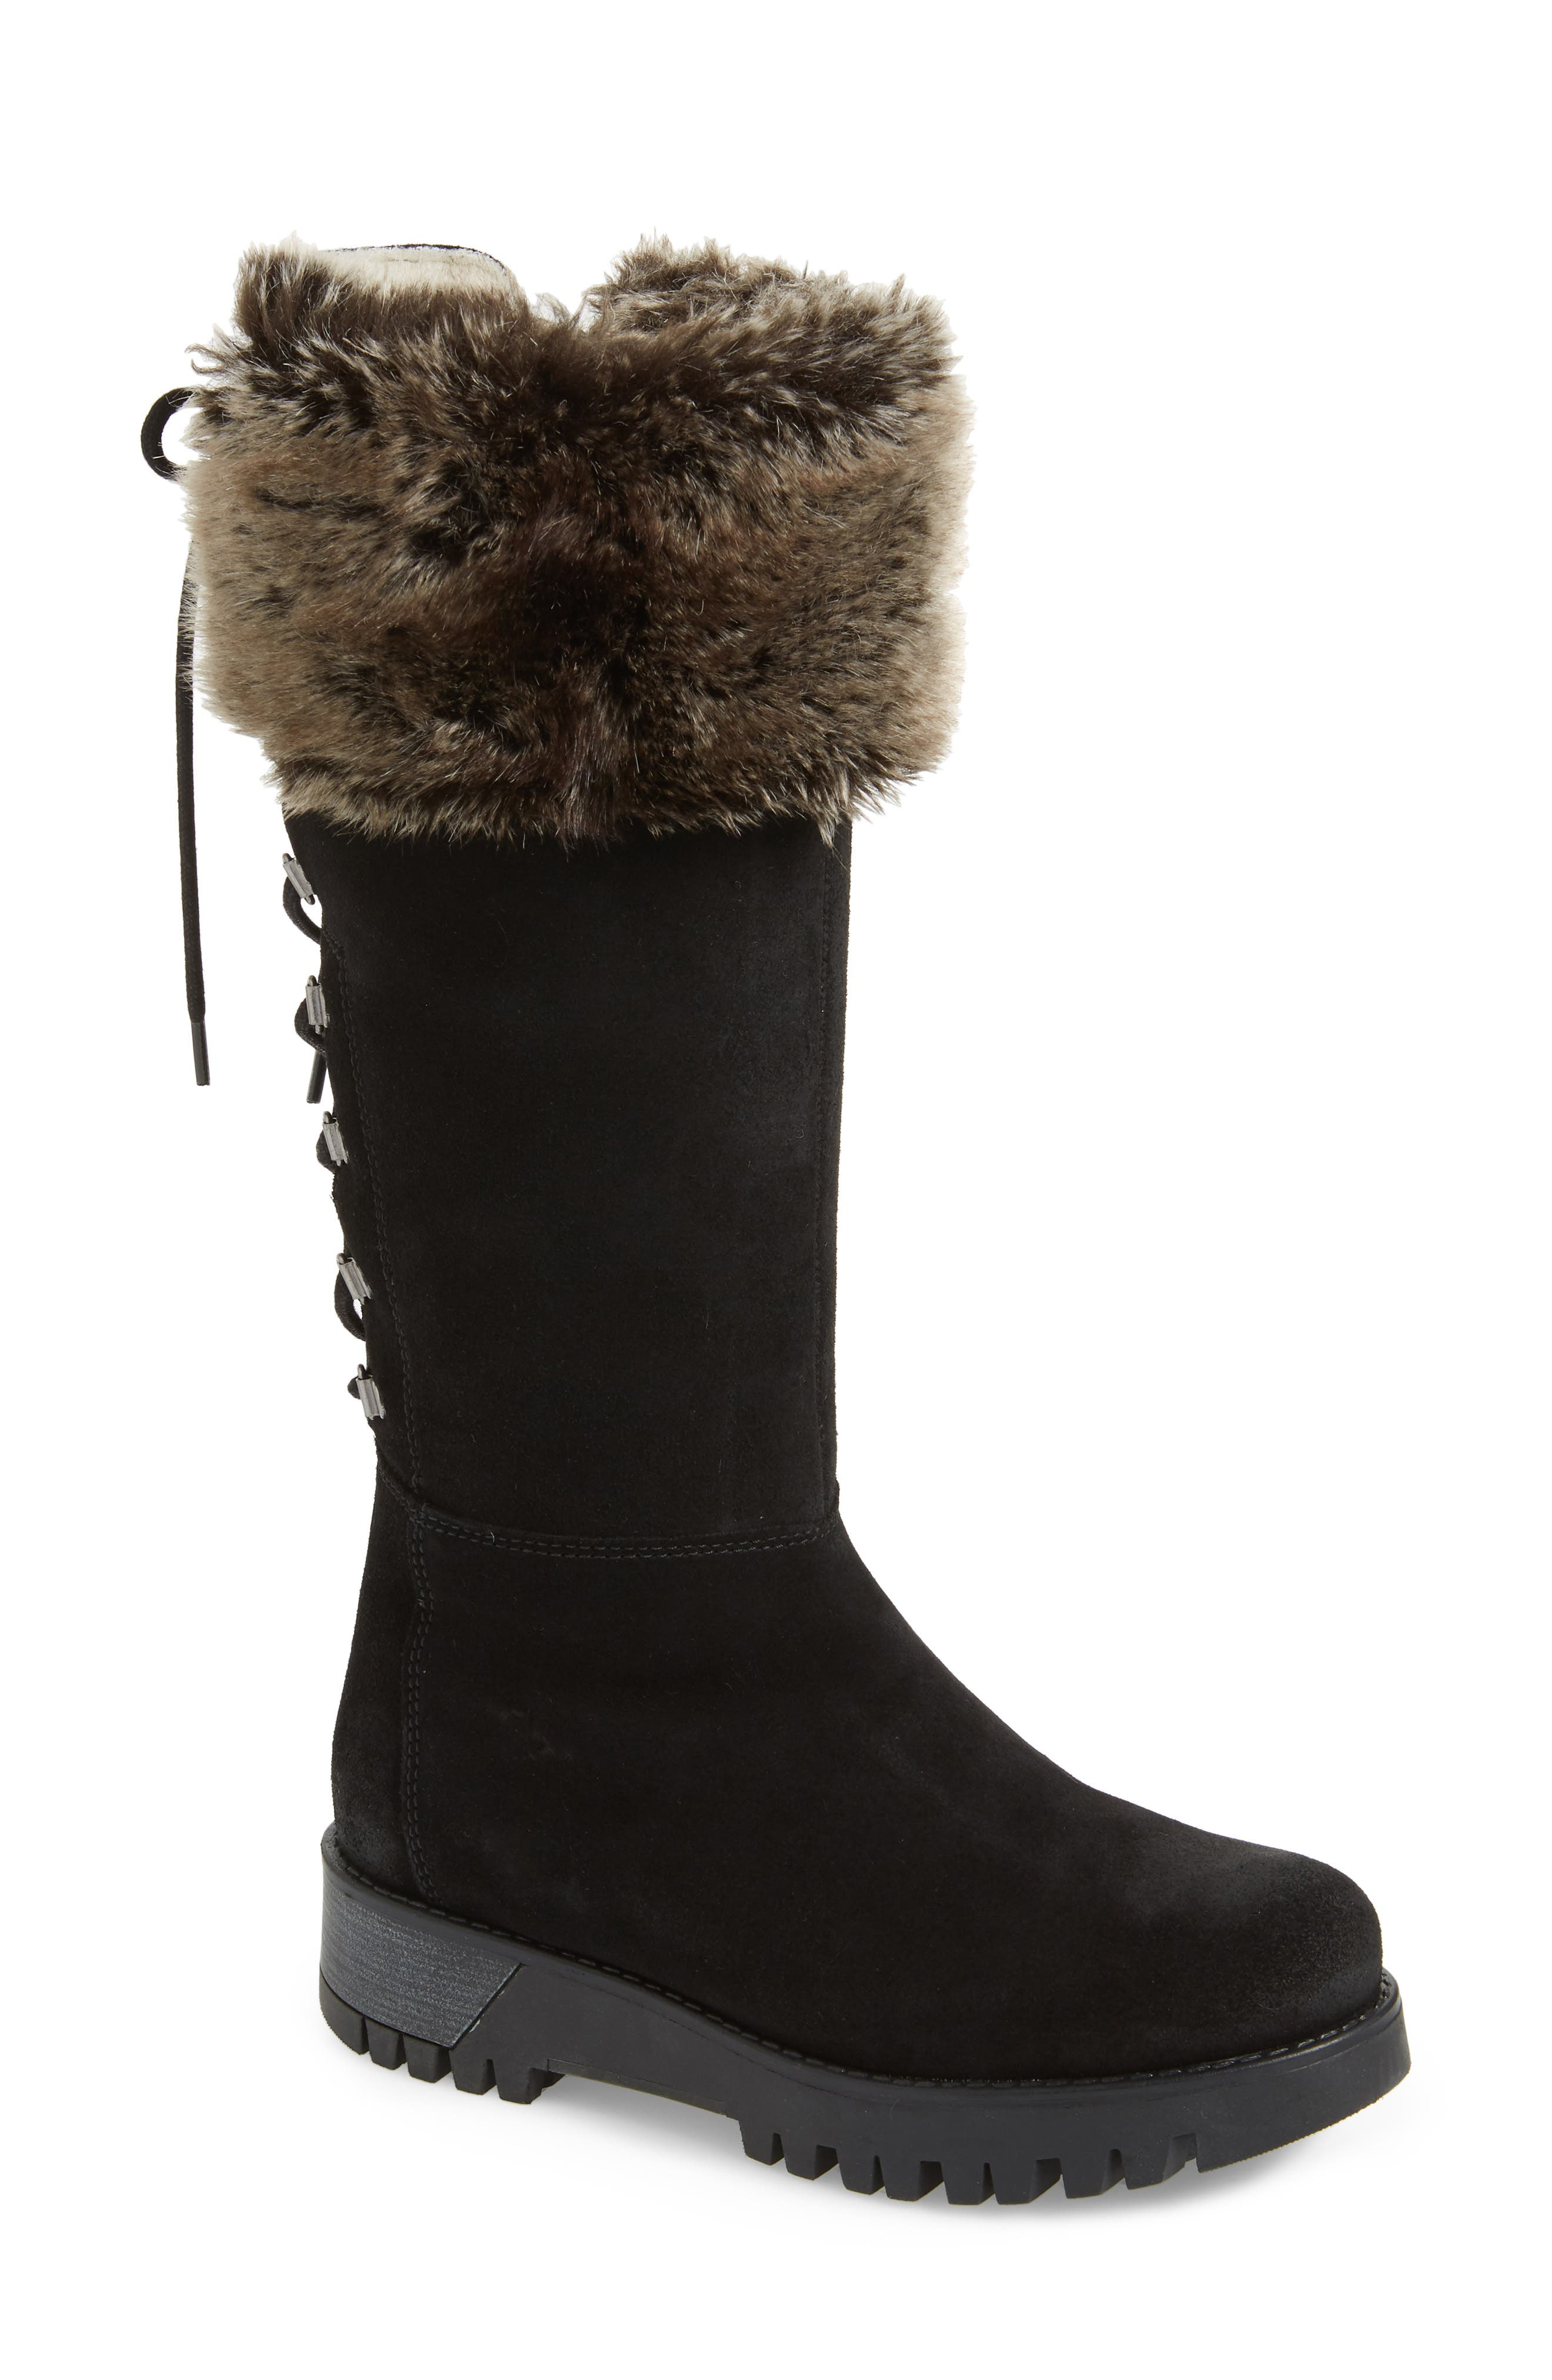 Graham Waterproof Winter Boot with Faux Fur Cuff,                         Main,                         color, BLACK SUEDE